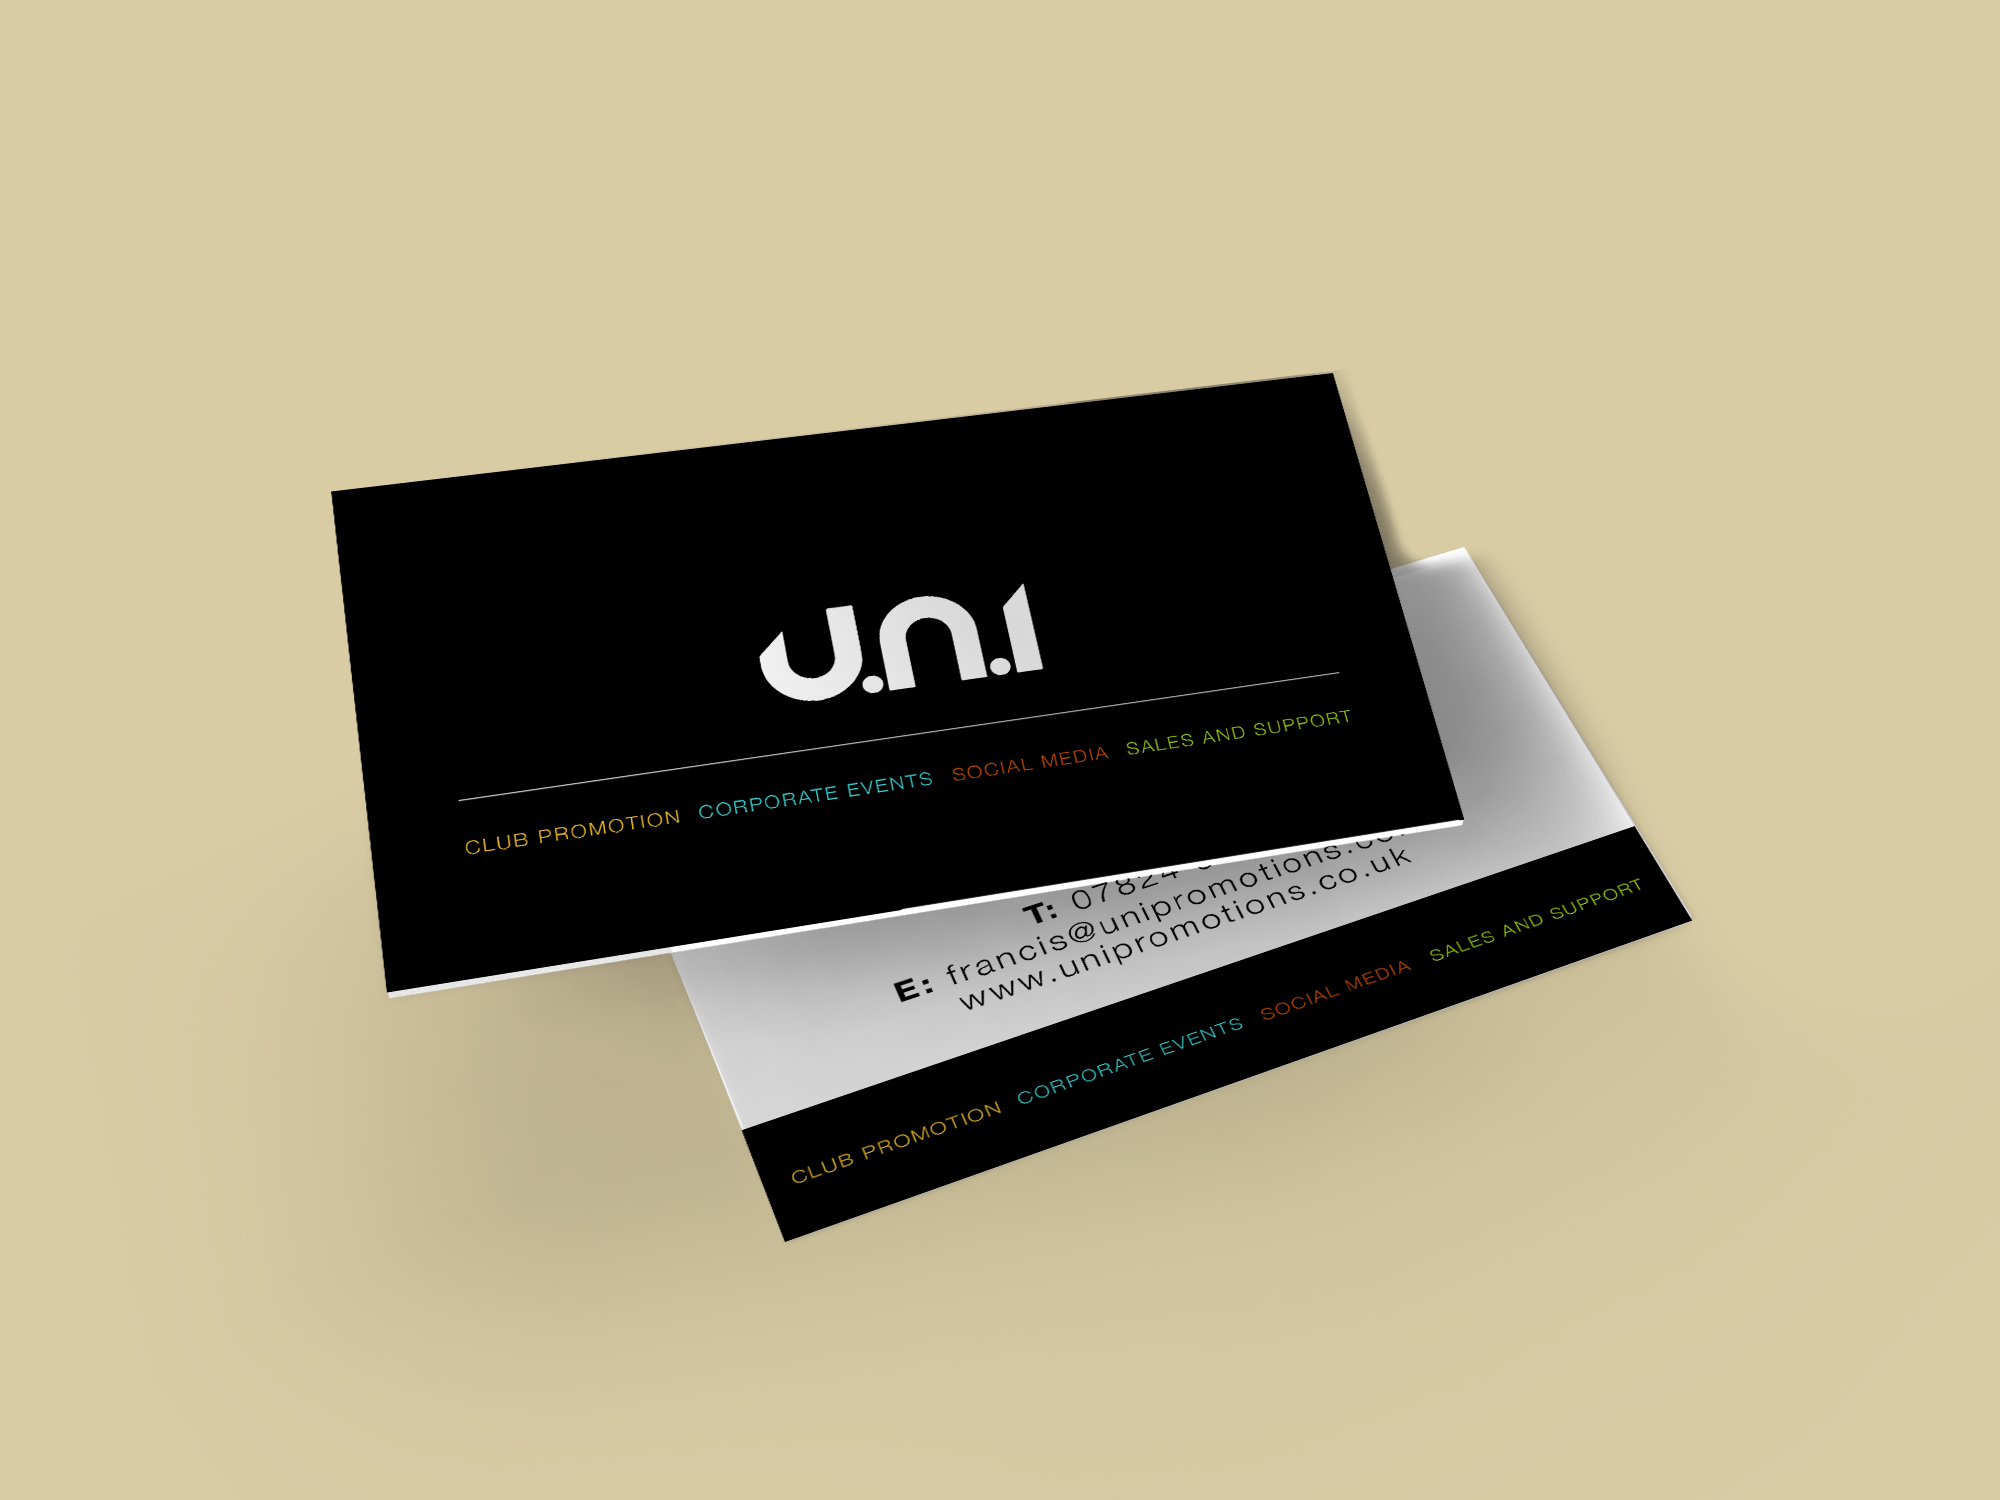 U.ni promotions business cards | Freedom of Creation